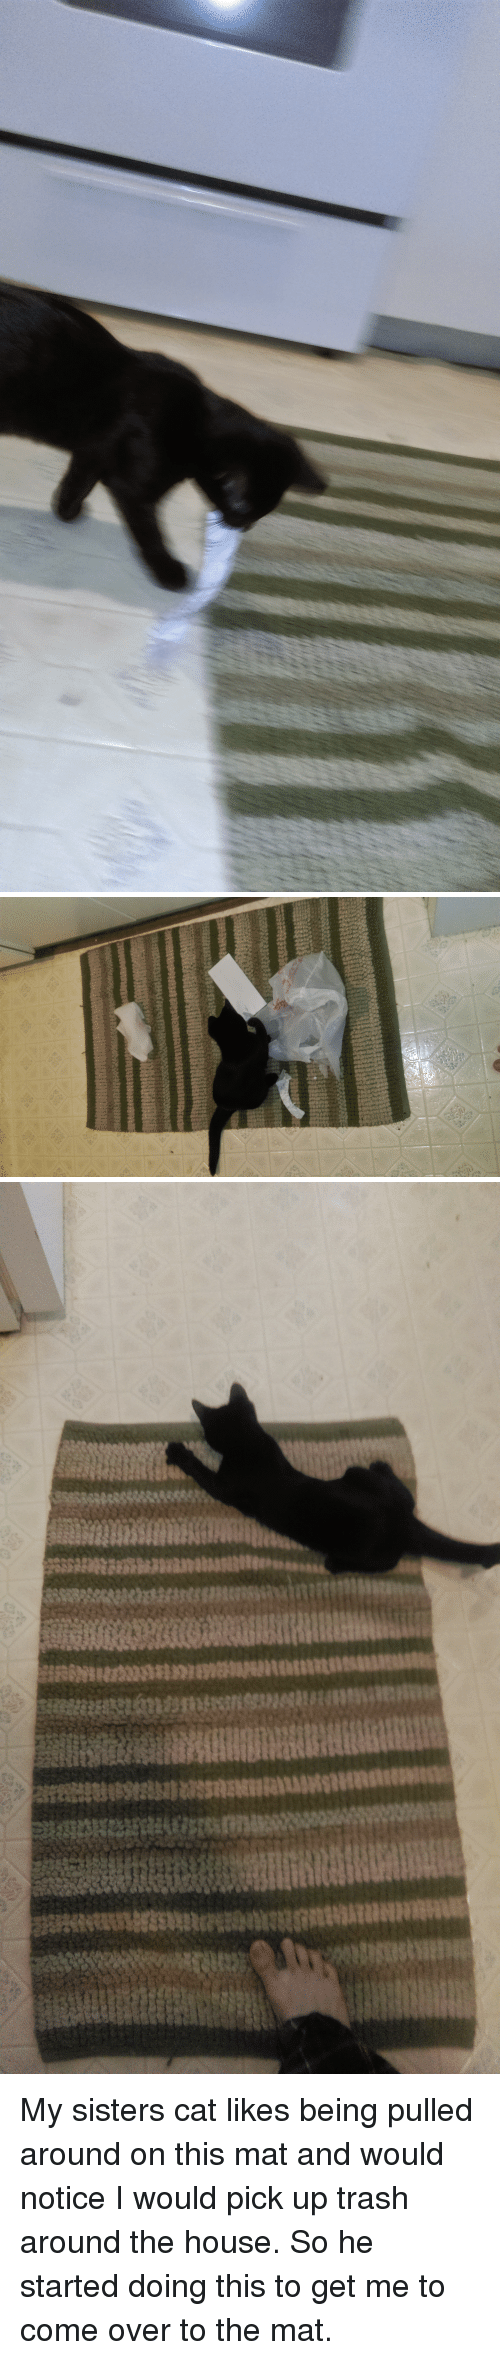 Come Over, Trash, and House: My sisters cat likes being pulled around on this mat and would notice I would pick up trash around the house. So he started doing this to get me to come over to the mat.